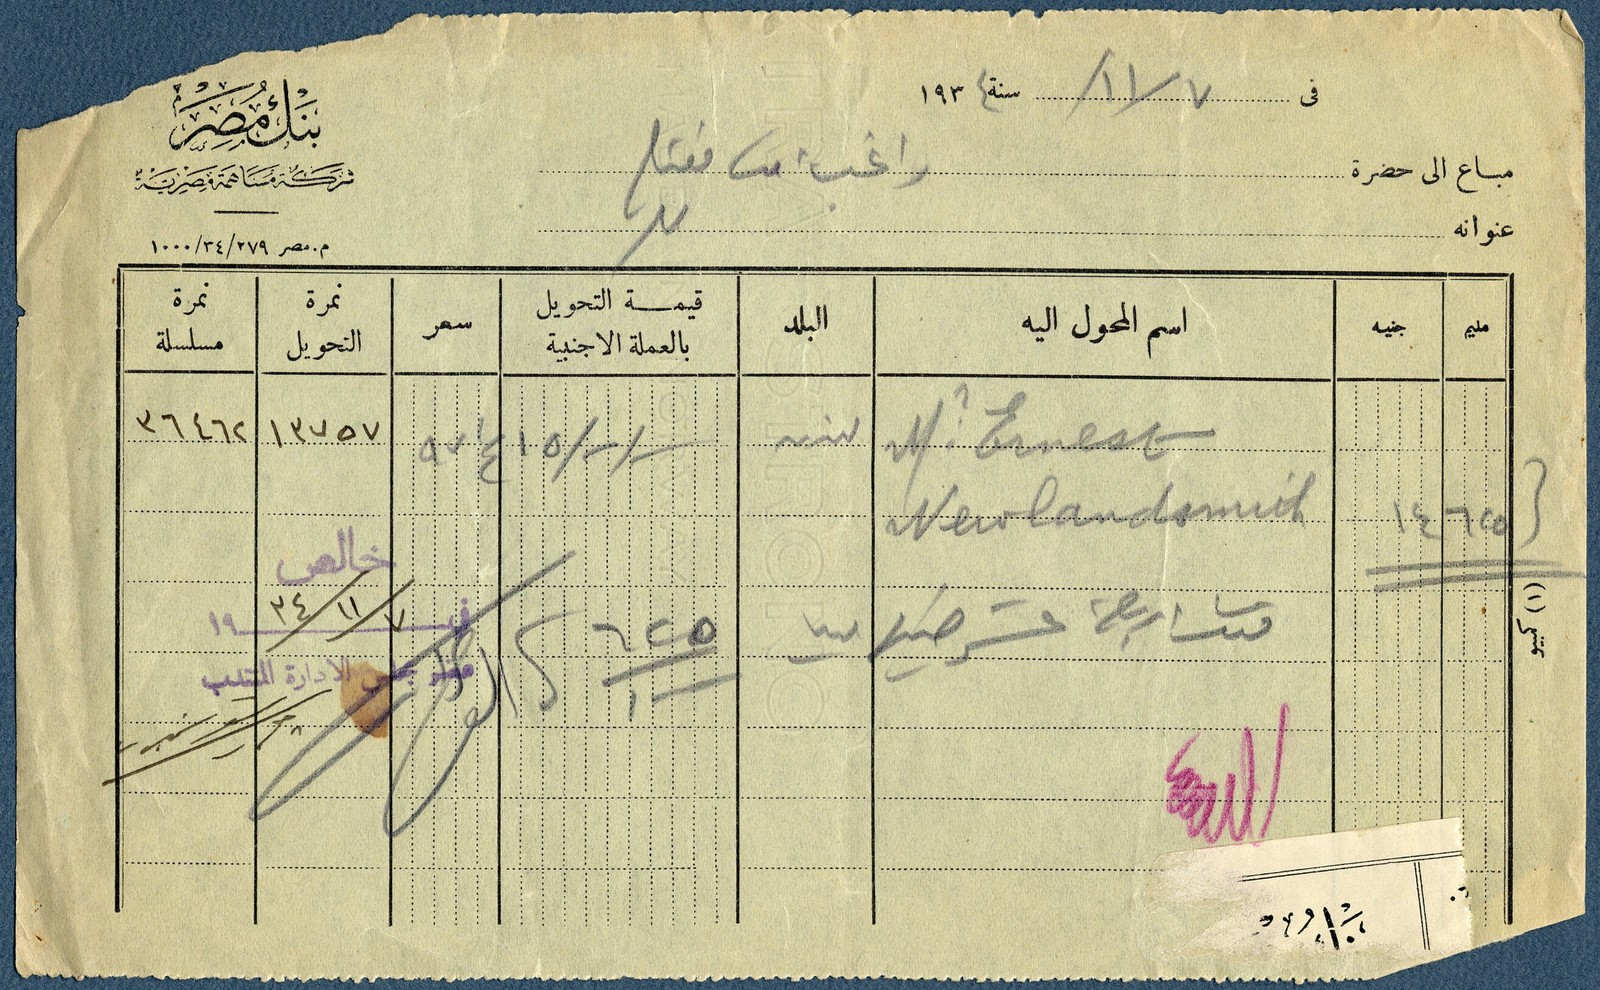 Letter from Ragheb Moftah to Ernest Newlandsmith, including a Bank of Egypt receipt, November 15, 1934